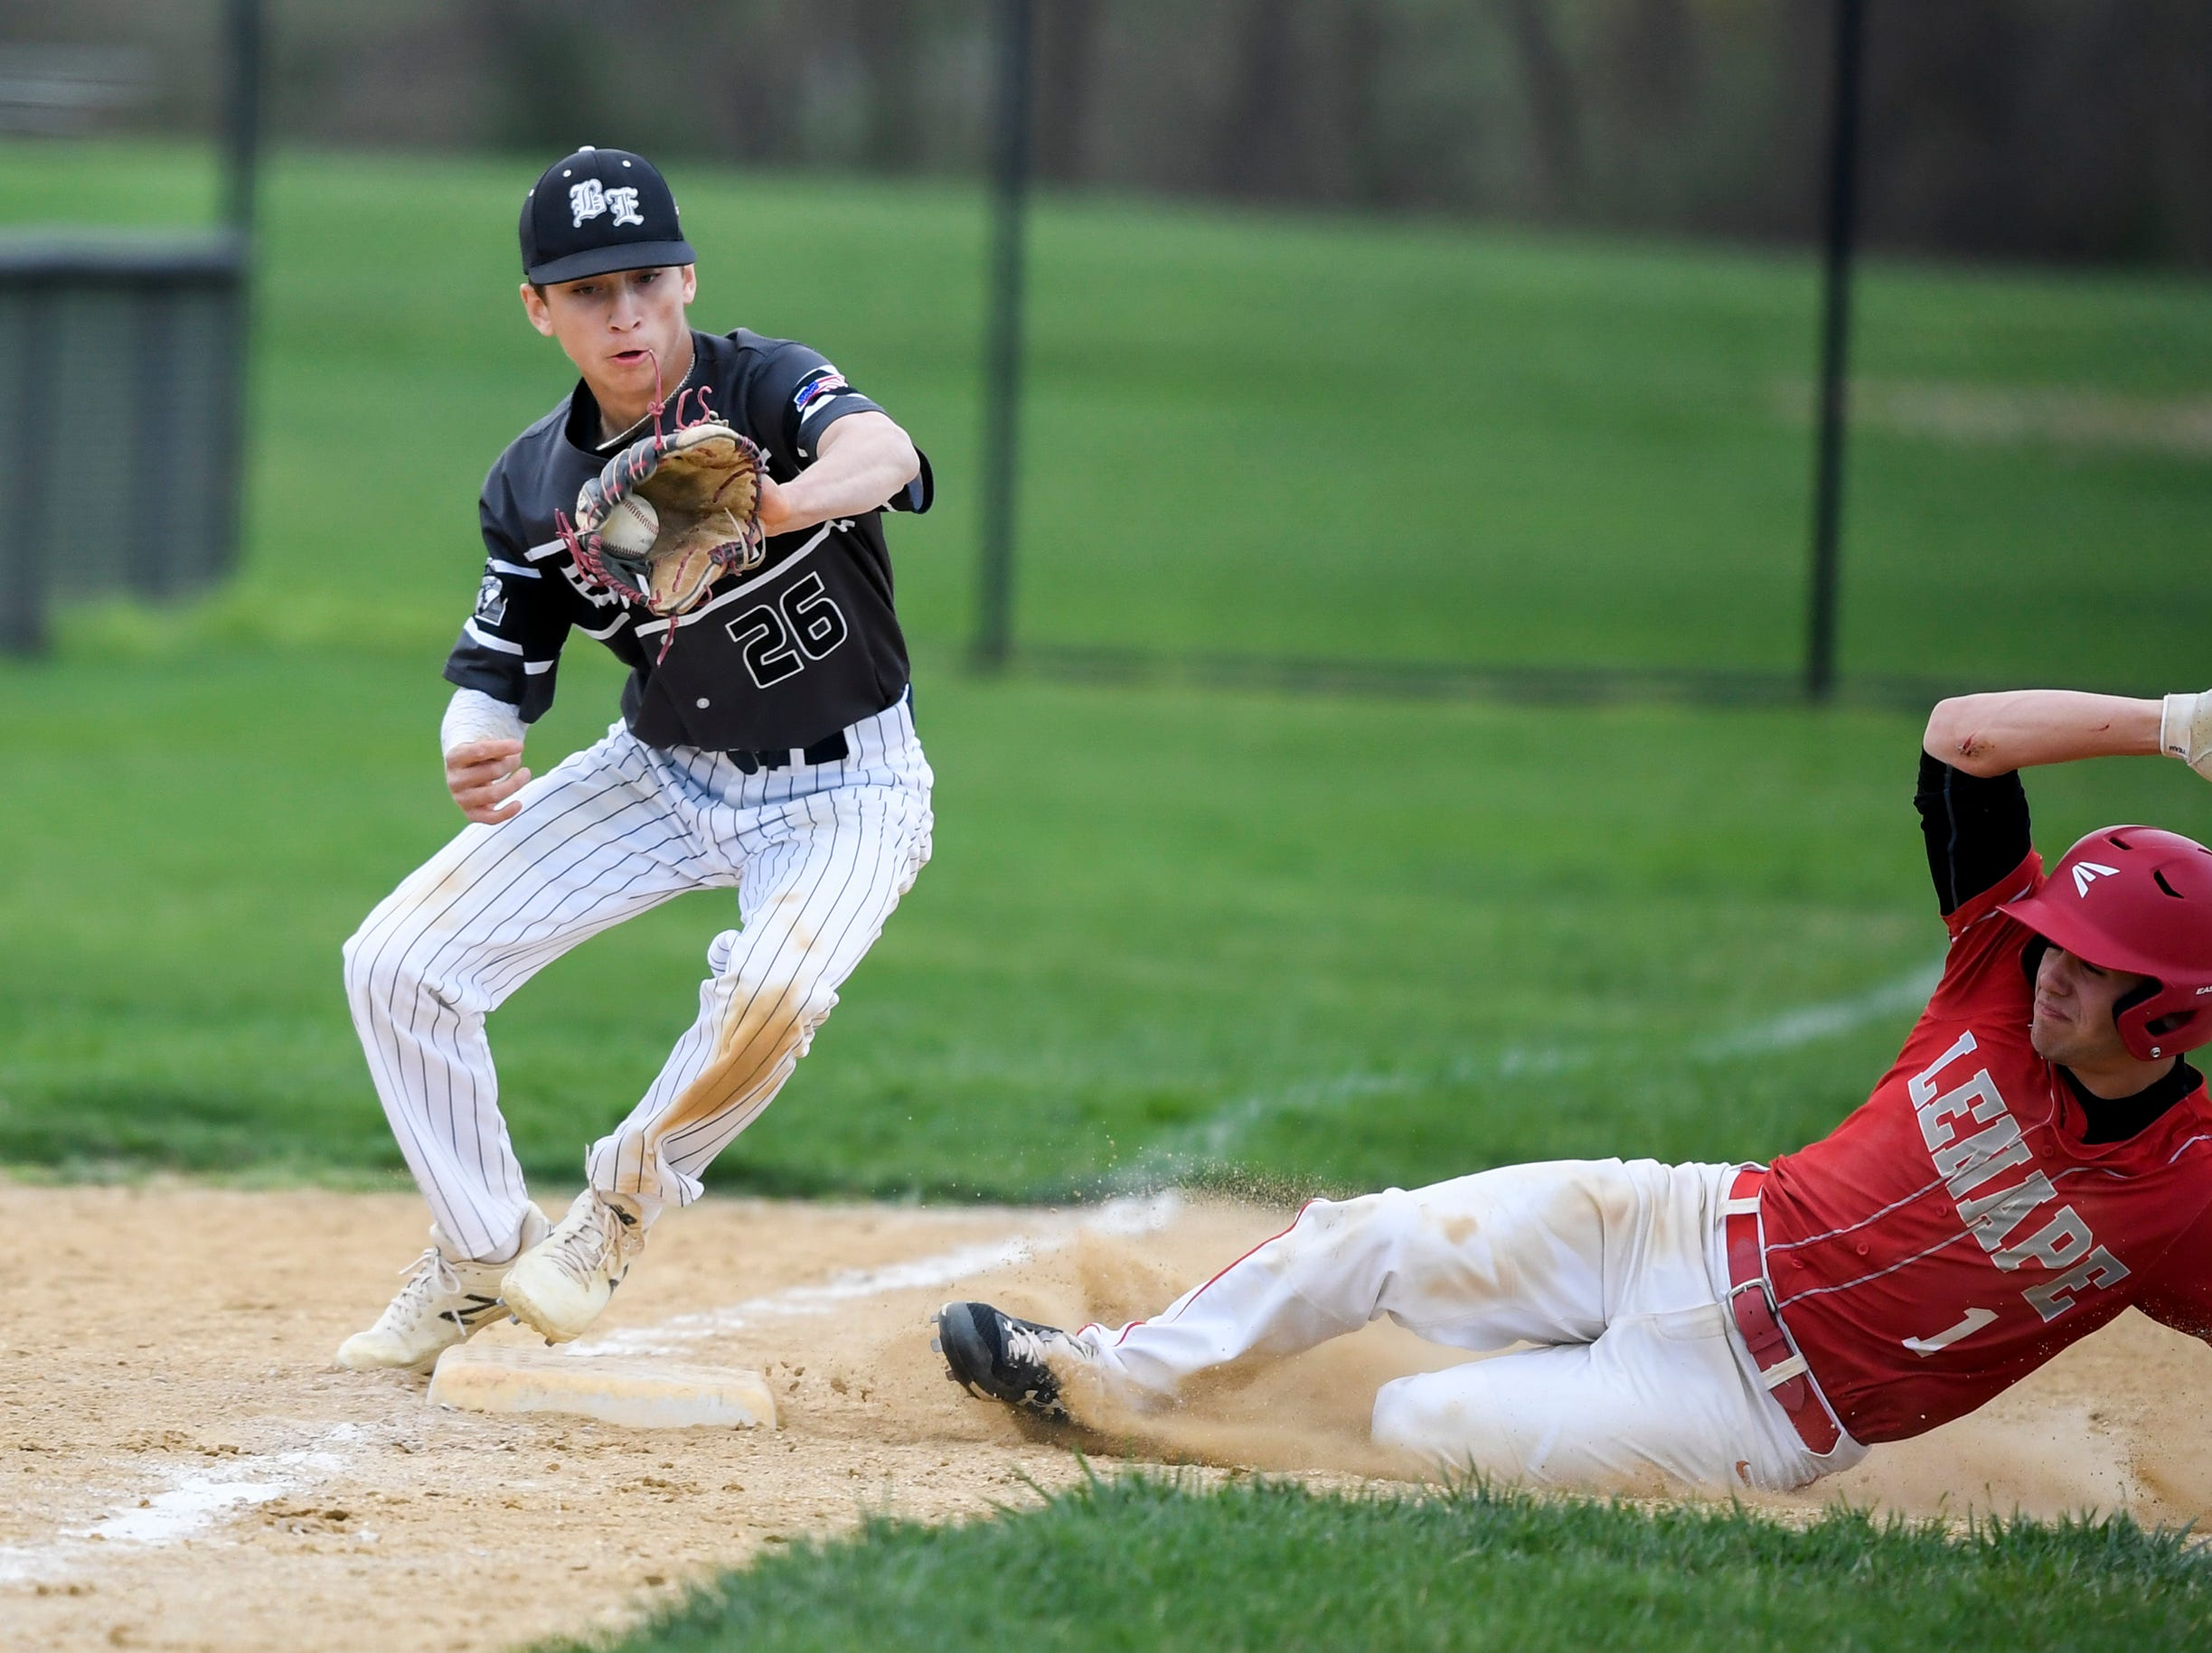 Lenape's Joey Pence (1) slides safe into third as Bishop Eustace's Daniel Obermeier (26) attempts the out Tuesday, April 16, 2019 in Medford, N.J. Bishop Eustace won 5-3 and head coach Sam Tropiano earned his record-setting 673rd win.